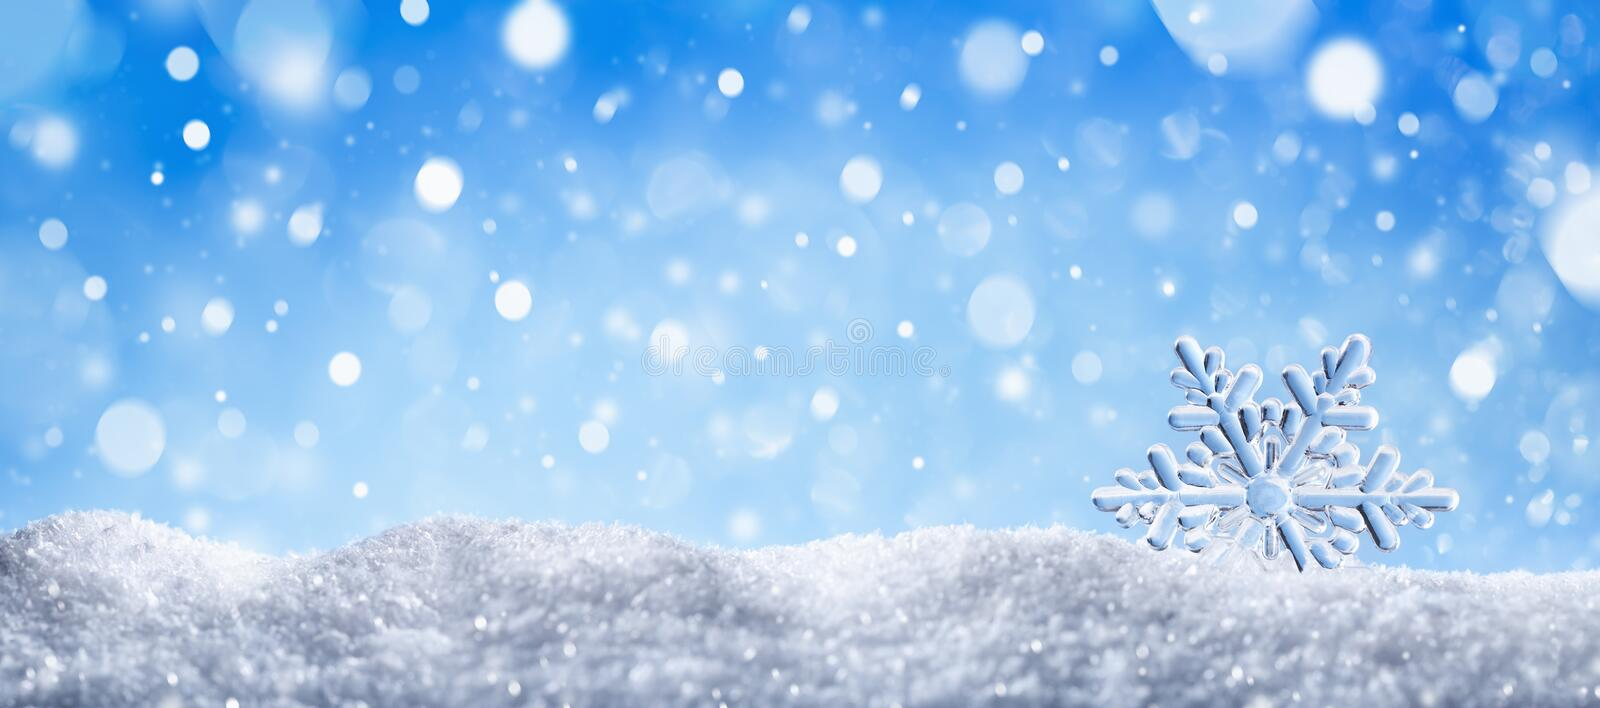 Winter snow background with decorative snowflake against blue sky. Banner format. Beautiful wintertime holiday scene. Winter snow background with decorative royalty free stock photo